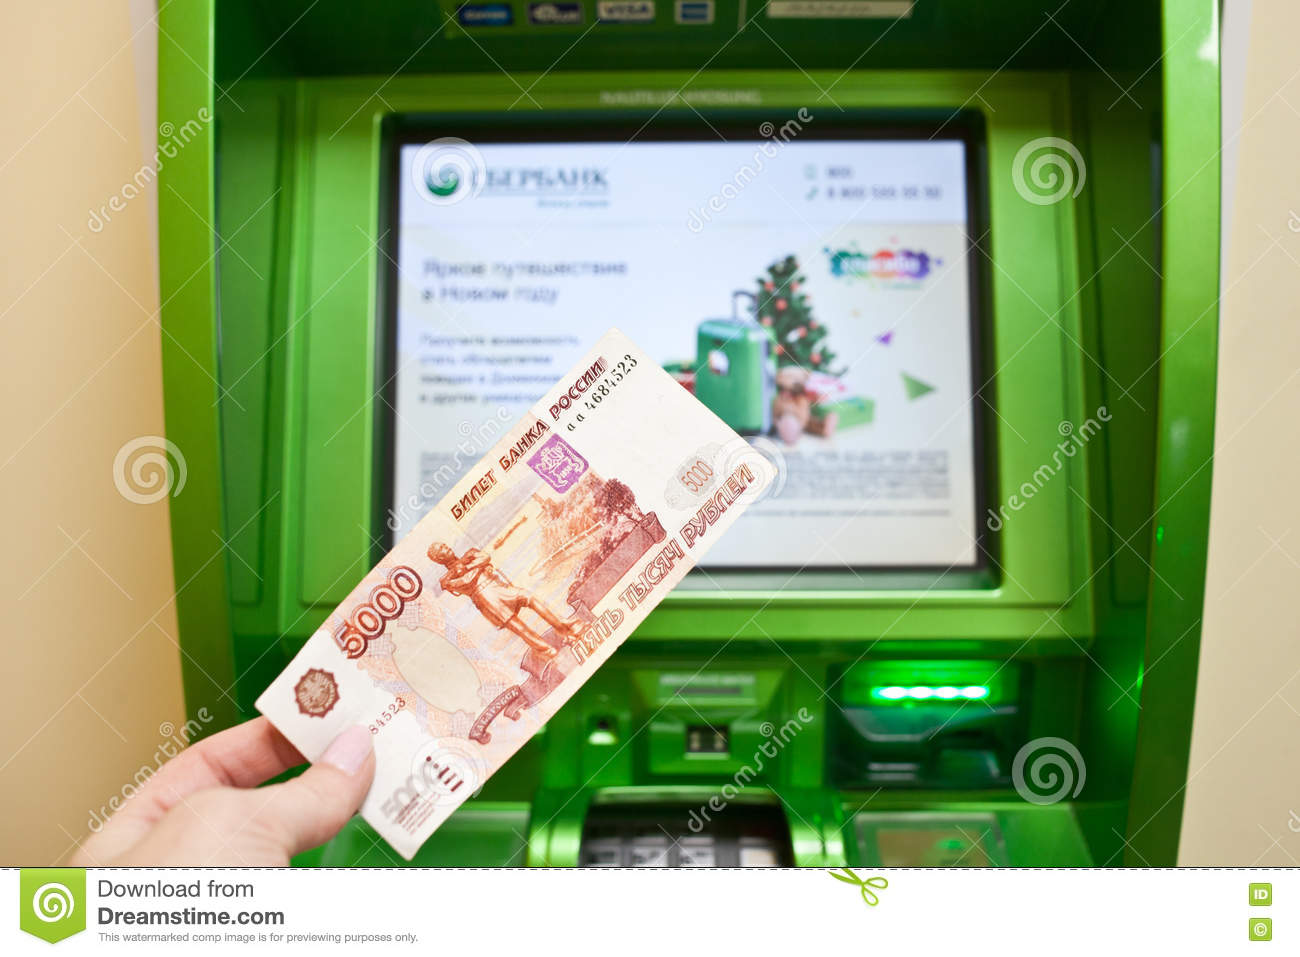 How to get a Sberbank card and use it correctly 64